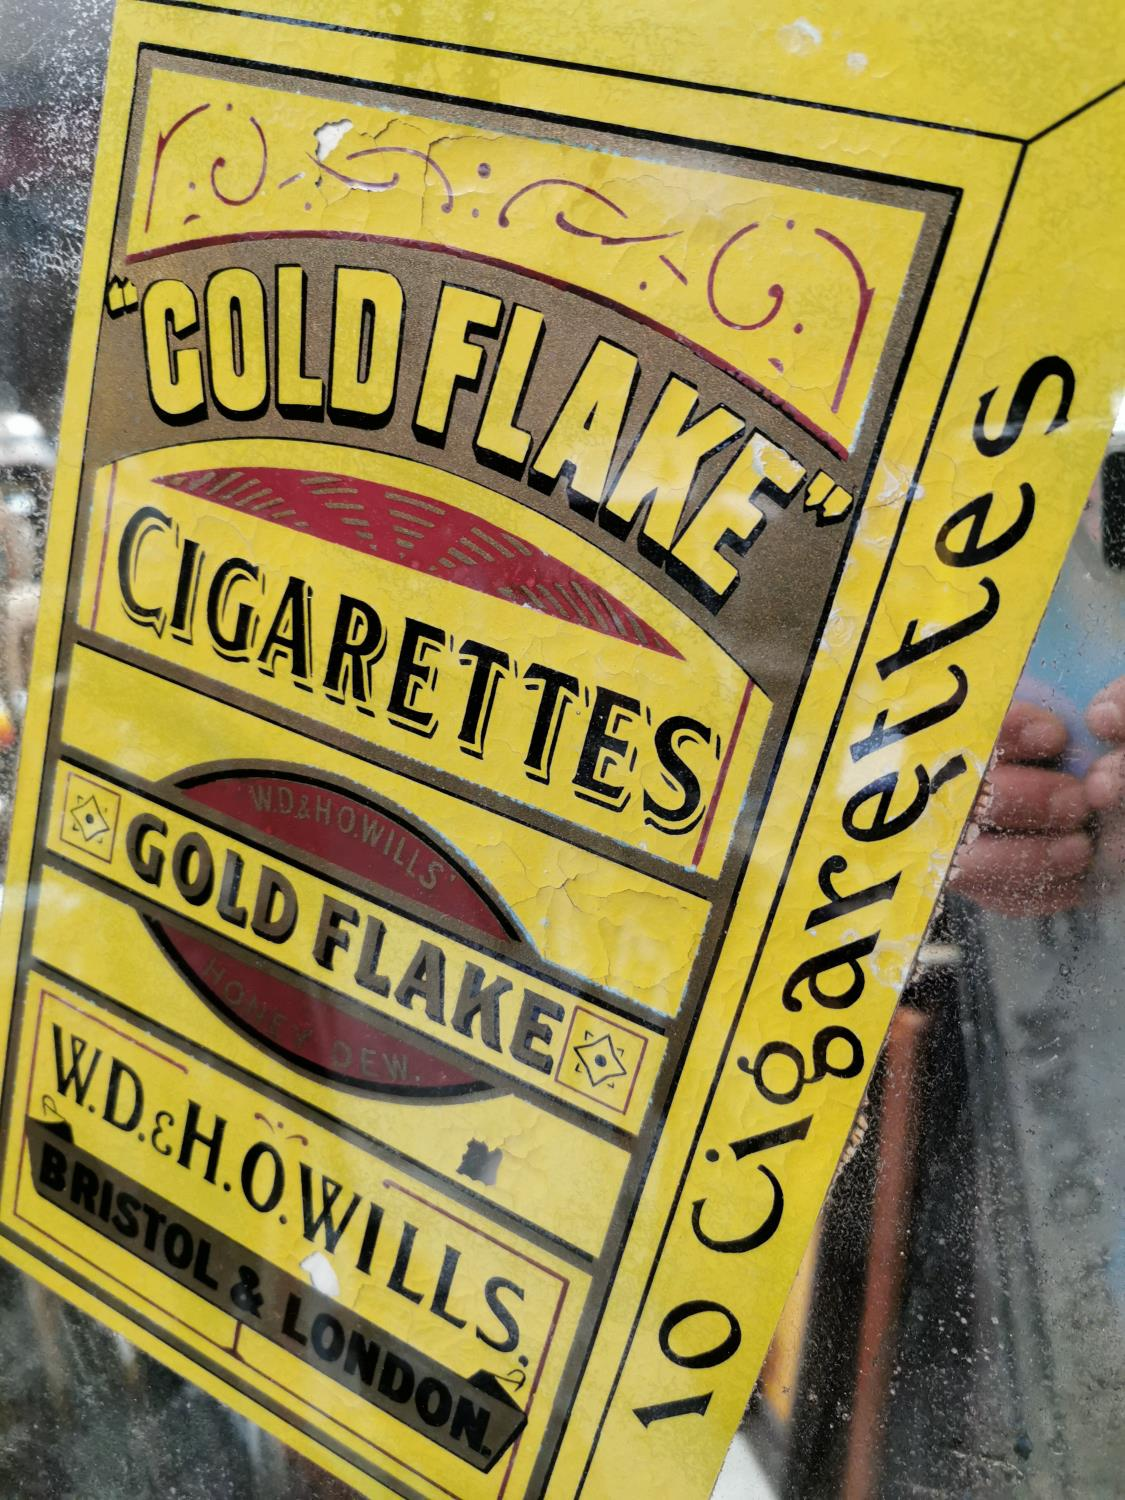 Will's Gold Flake advertising mirror. - Image 2 of 2